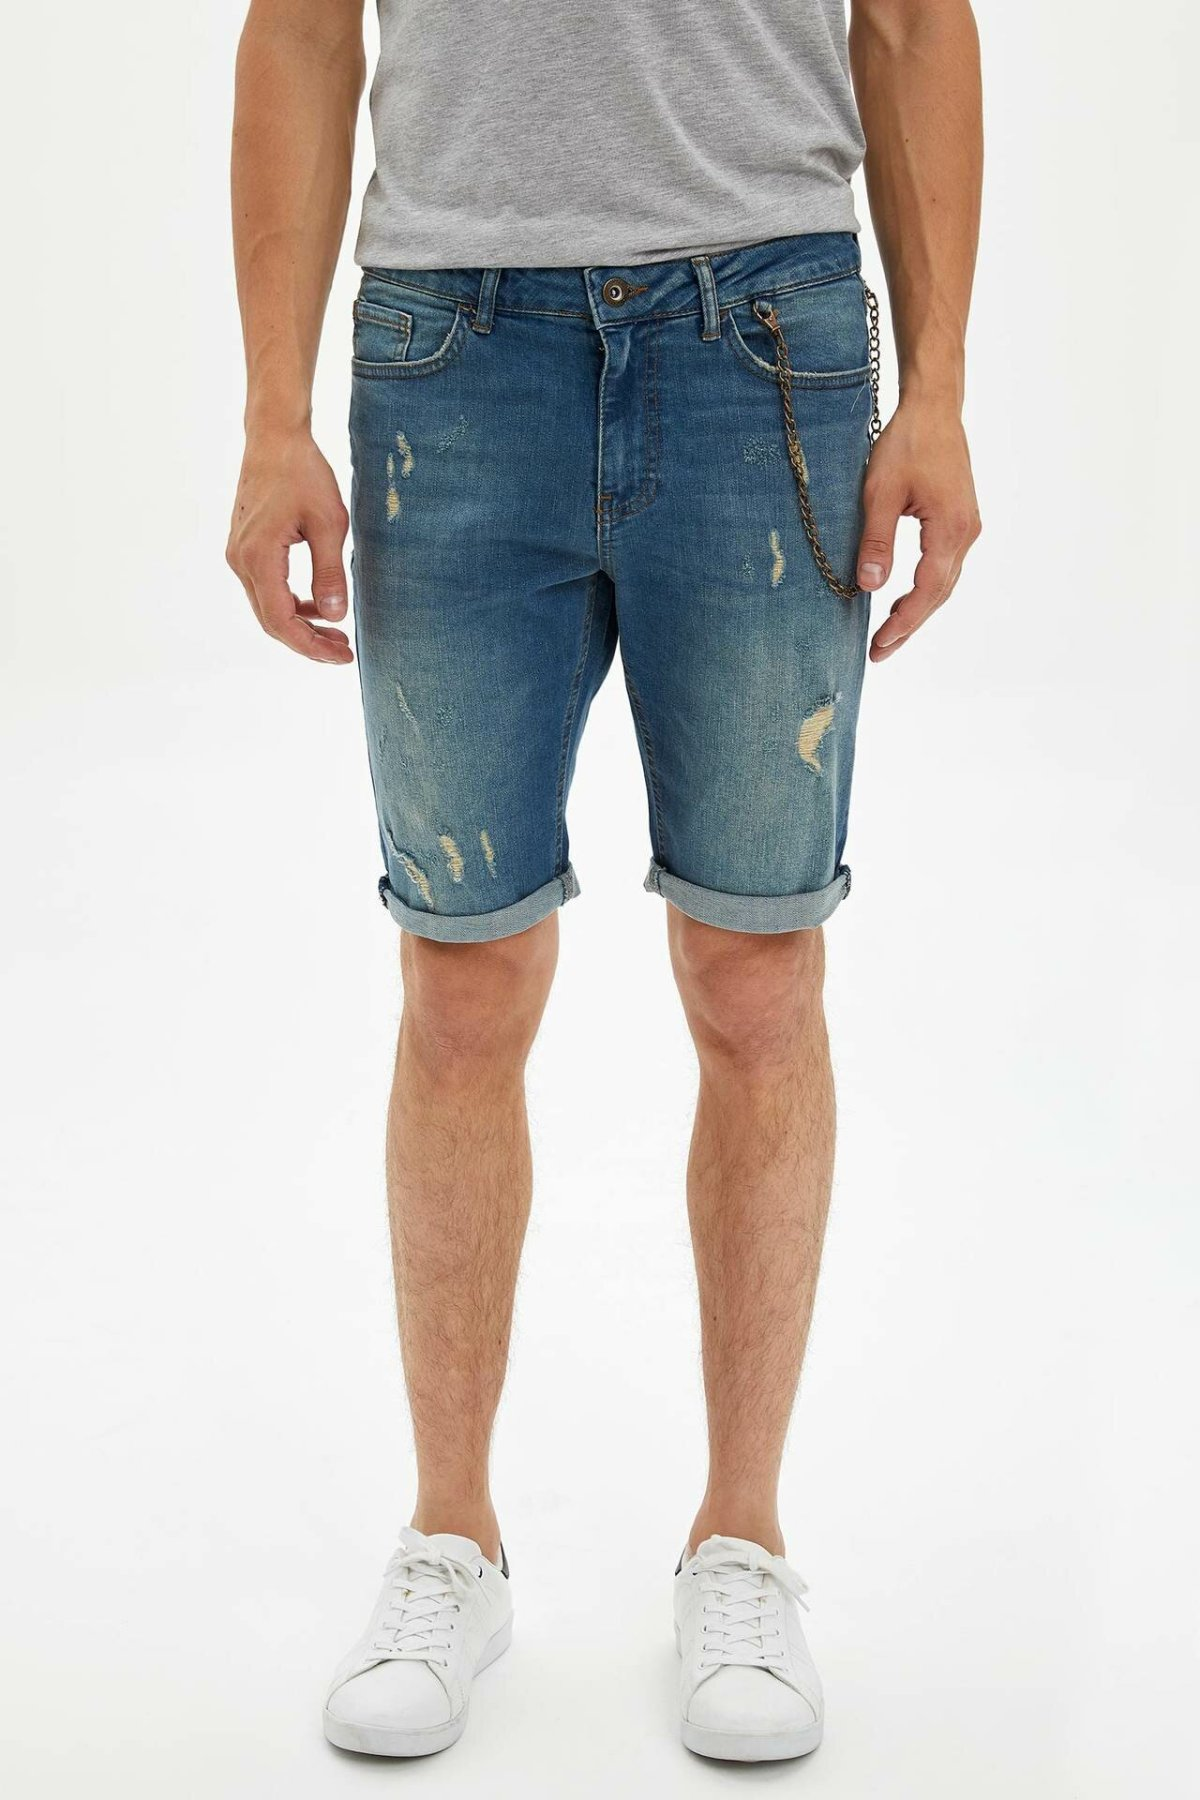 DeFacto Man Summer Light Blue Denim Shorts Men Casual Ripped Denim Bottoms Male Fashion Holes Bermuda Shorts-L0187AZ19HS